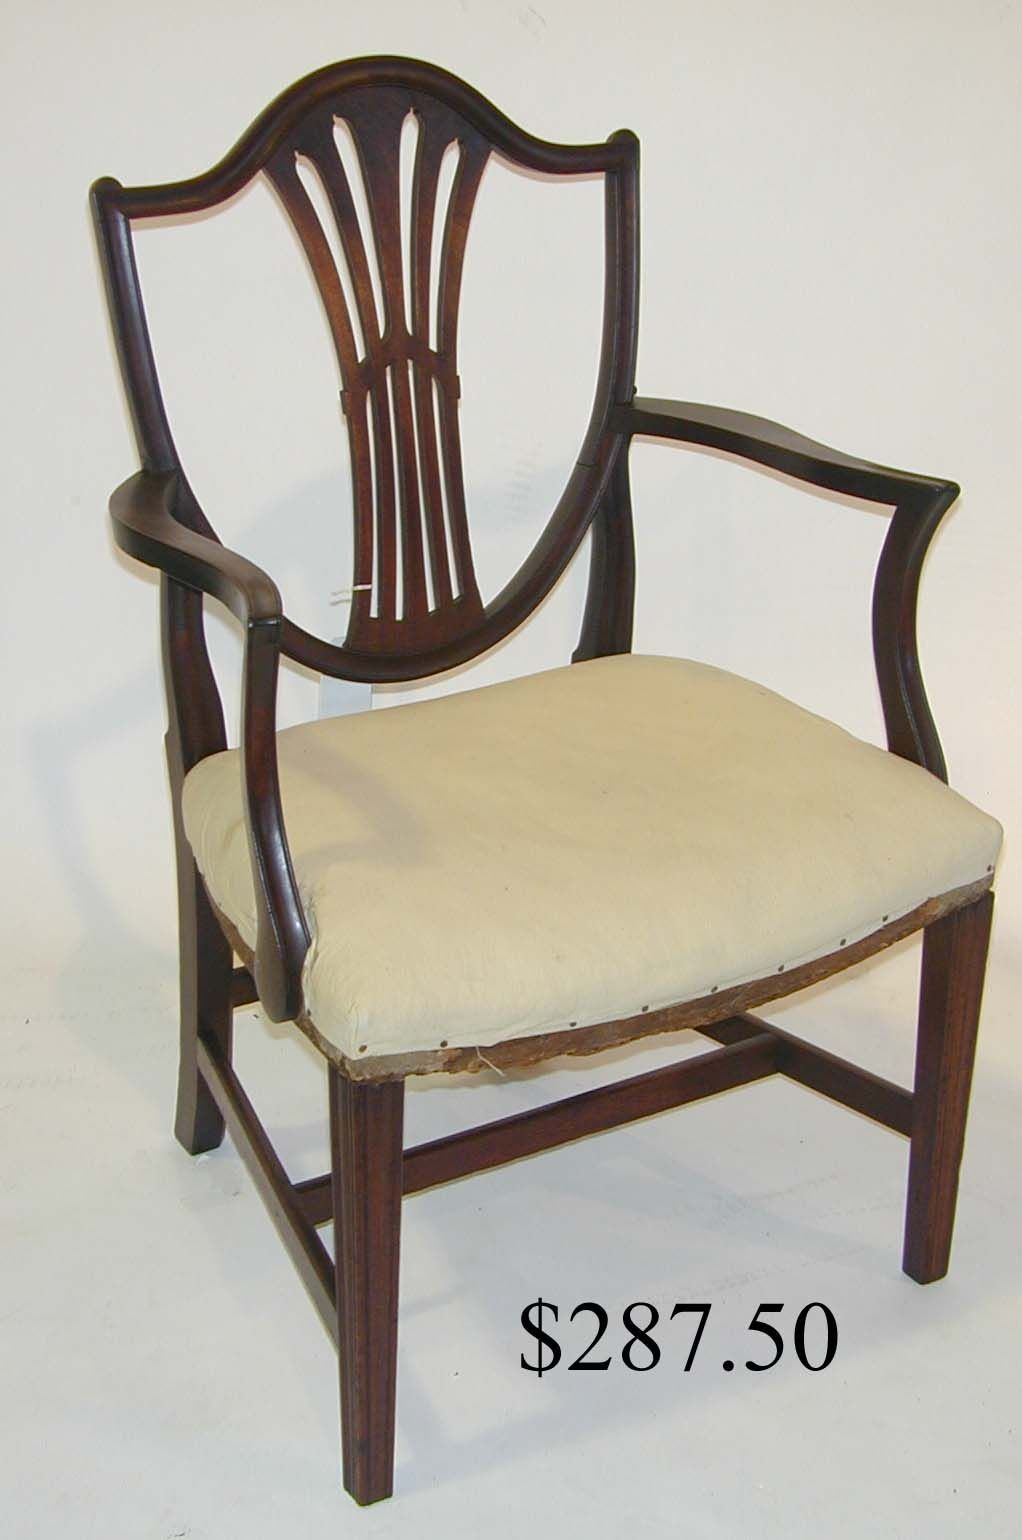 Hepplewhite Shield Back Chair Similar To Ours: Two End (with Arms) And 8